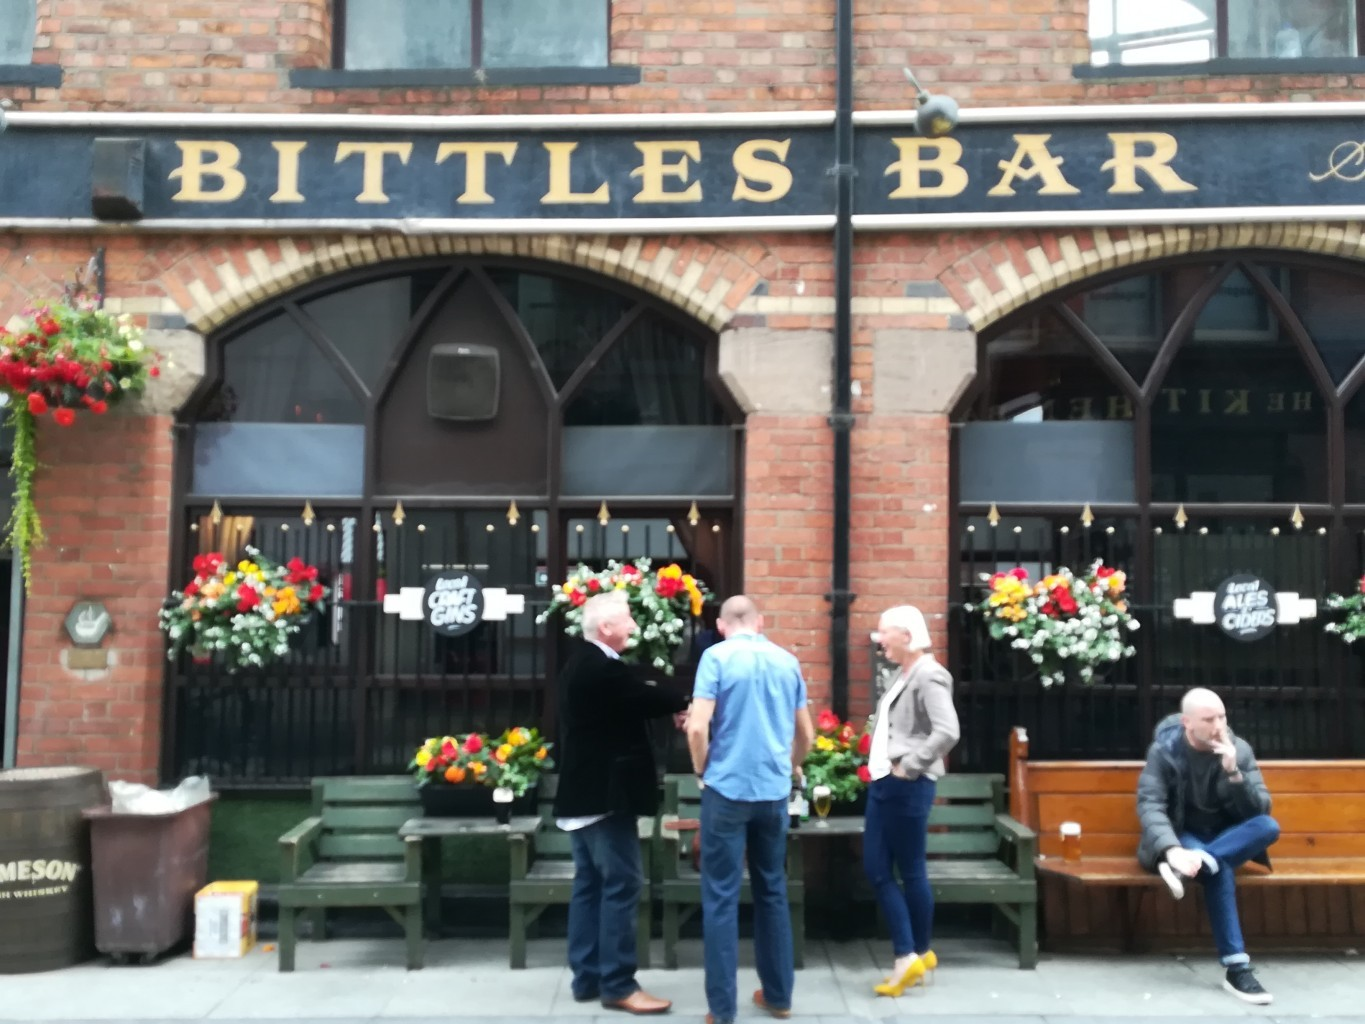 traditional pubs in Belfast Bittle's Bar